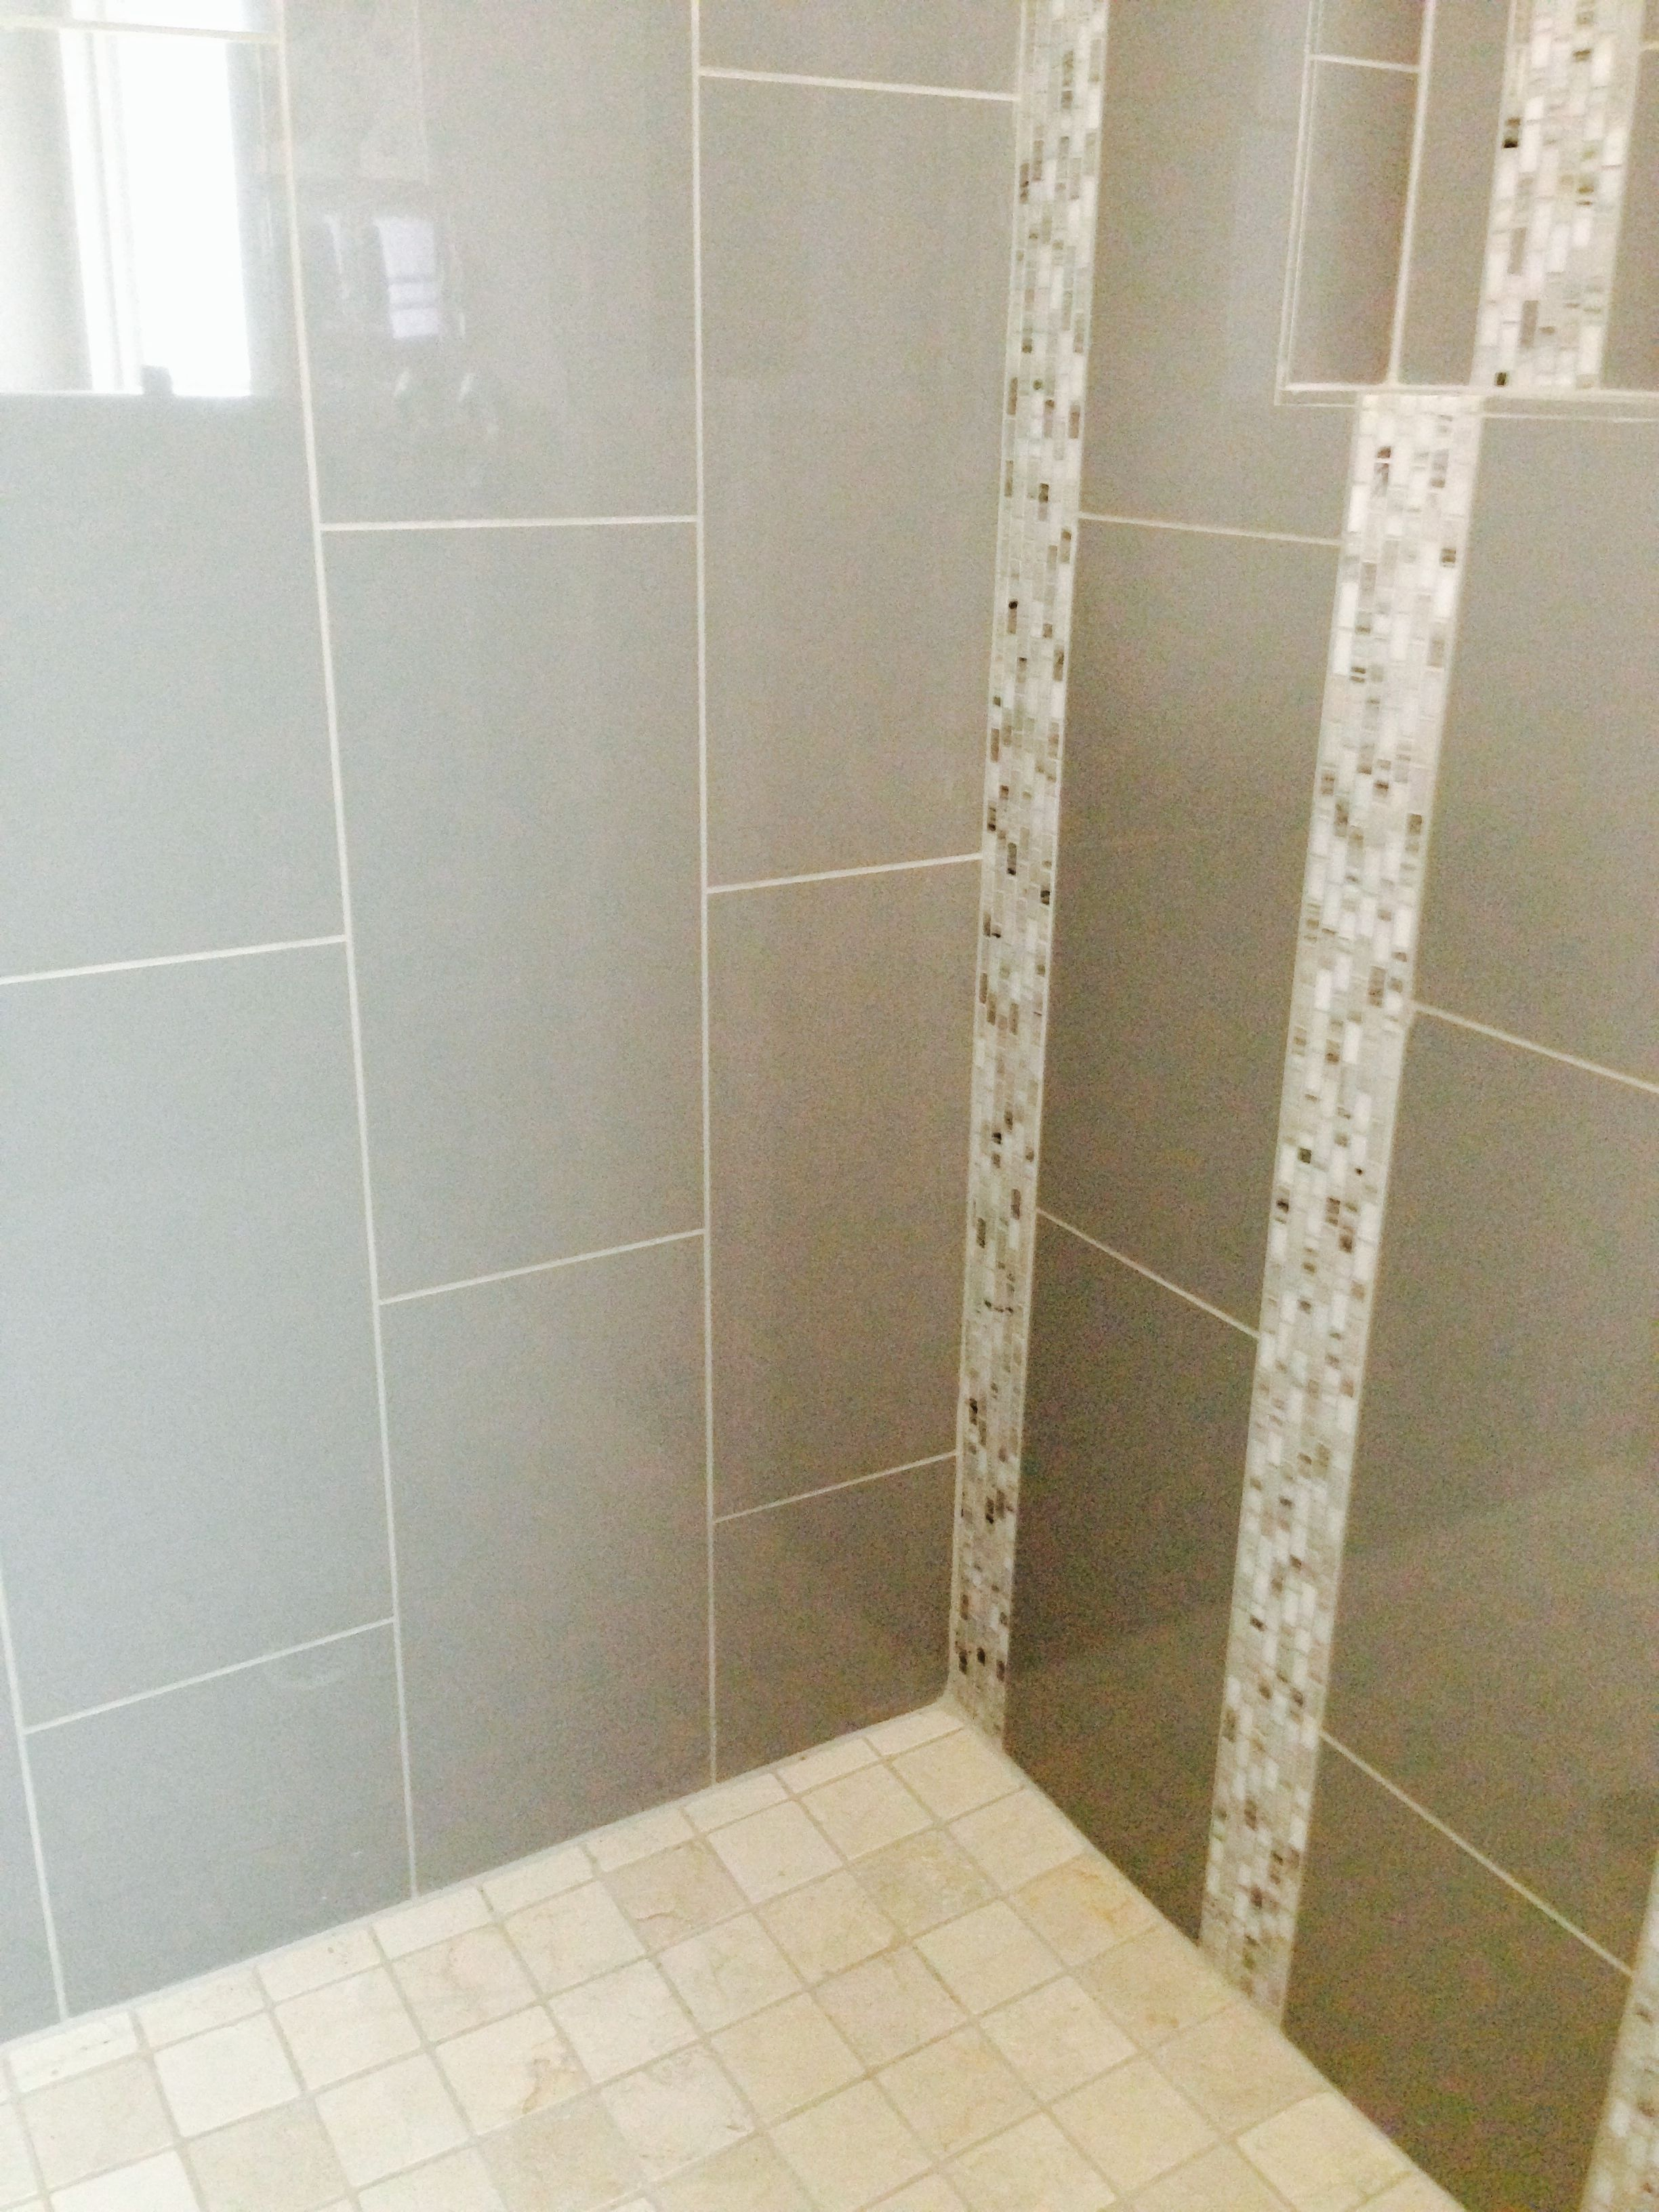 12x24 high gloss porcelain tile with decorative mosaic tile accent 12x24 high gloss porcelain tile with decorative mosaic tile accent with 2x2 marble tile shower floor dailygadgetfo Choice Image